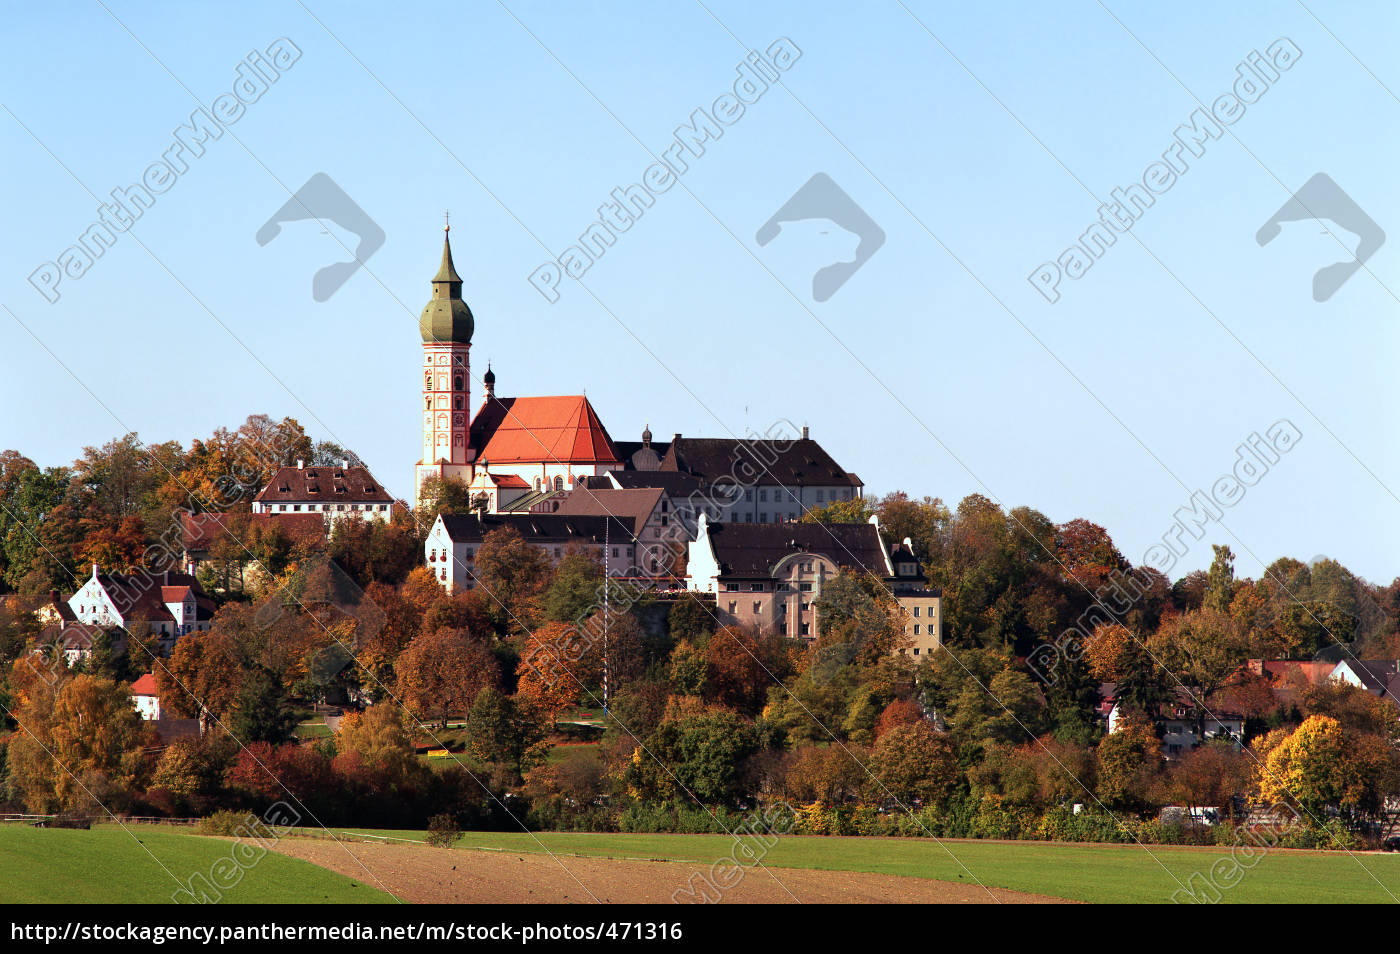 andechs - 471316